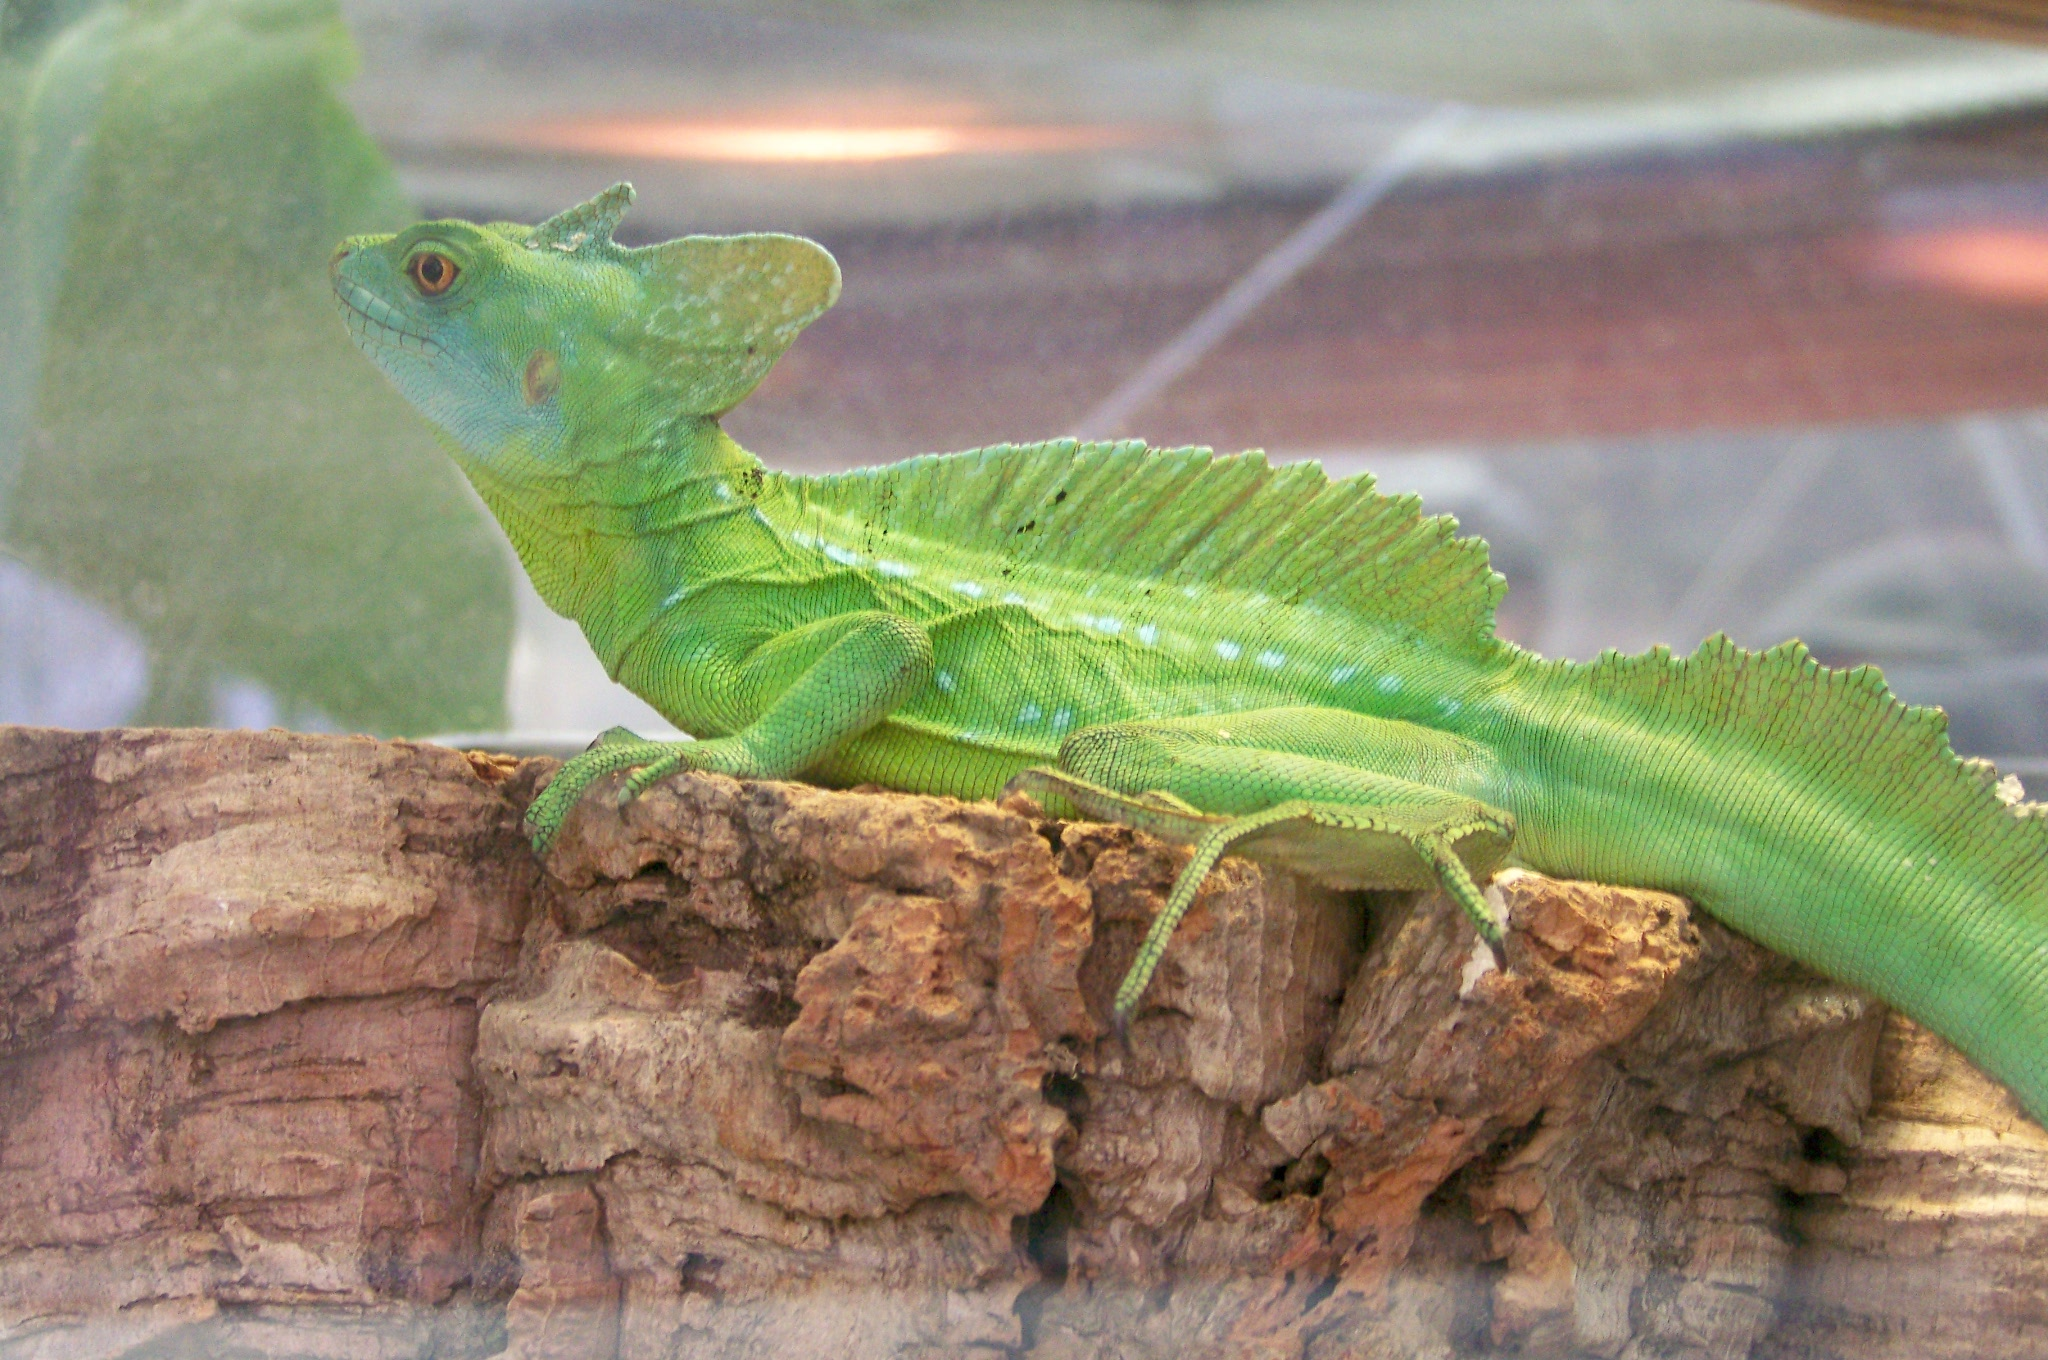 http://upload.wikimedia.org/wikipedia/commons/c/c0/CAS-BioD-Canopy-Green_Basilisk.JPG?uselang=fr